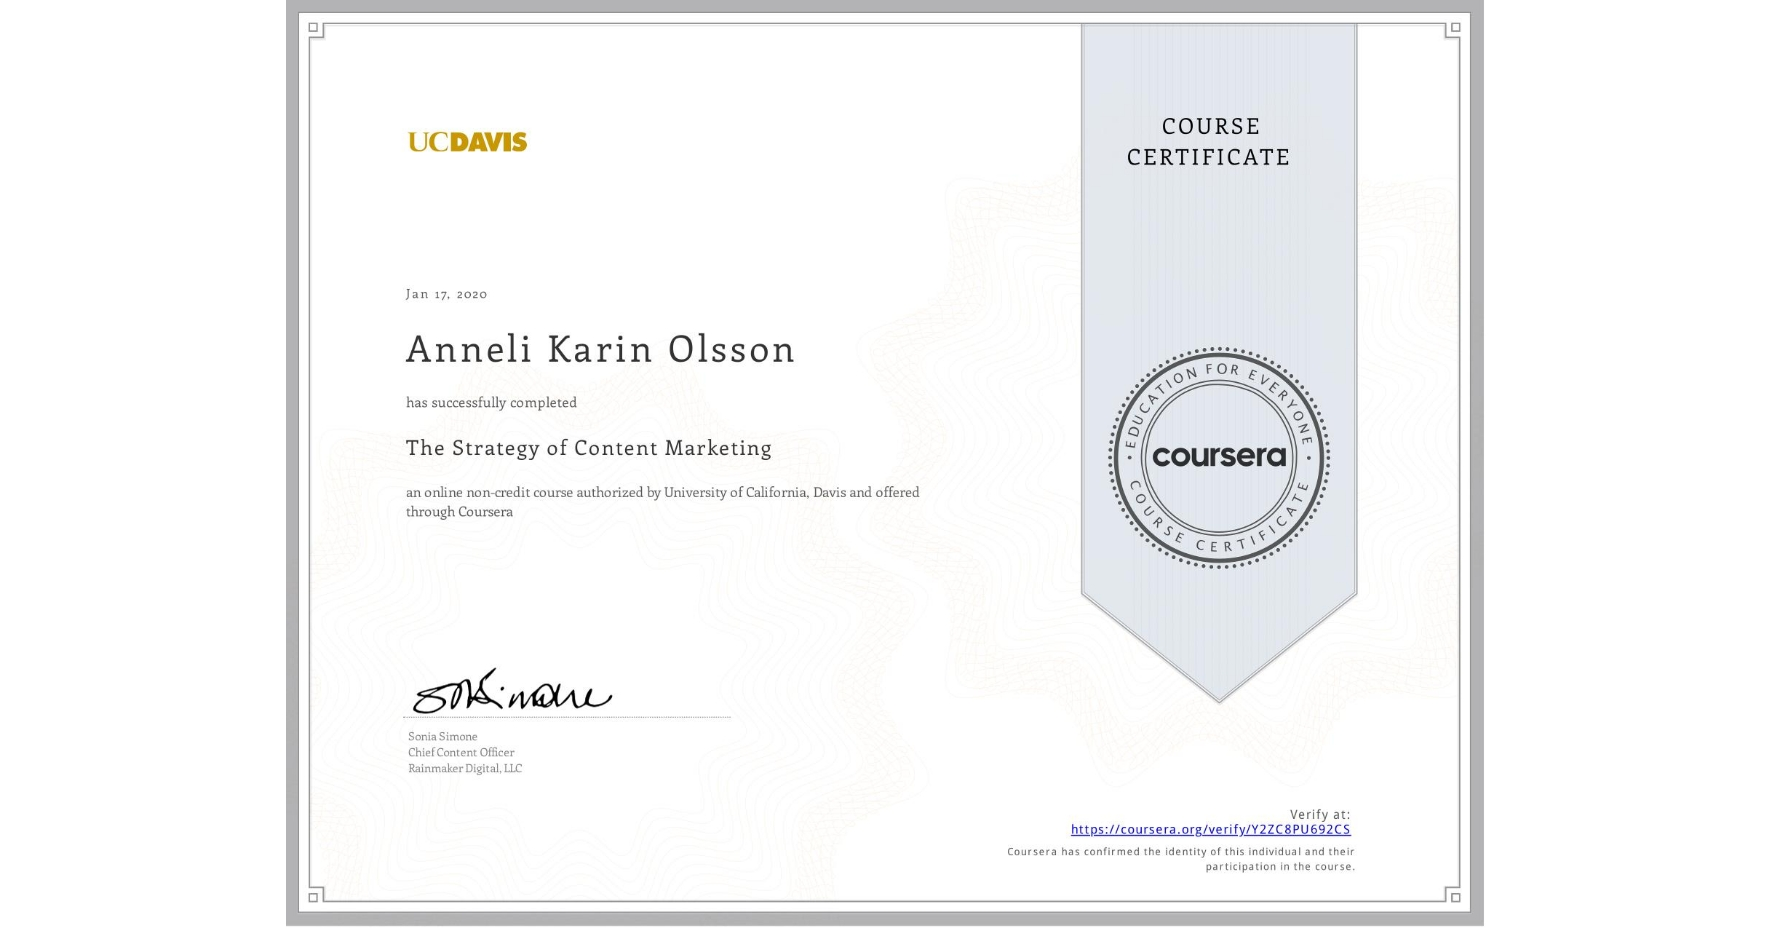 View certificate for Anneli Karin Olsson, The Strategy of Content Marketing, an online non-credit course authorized by University of California, Davis and offered through Coursera